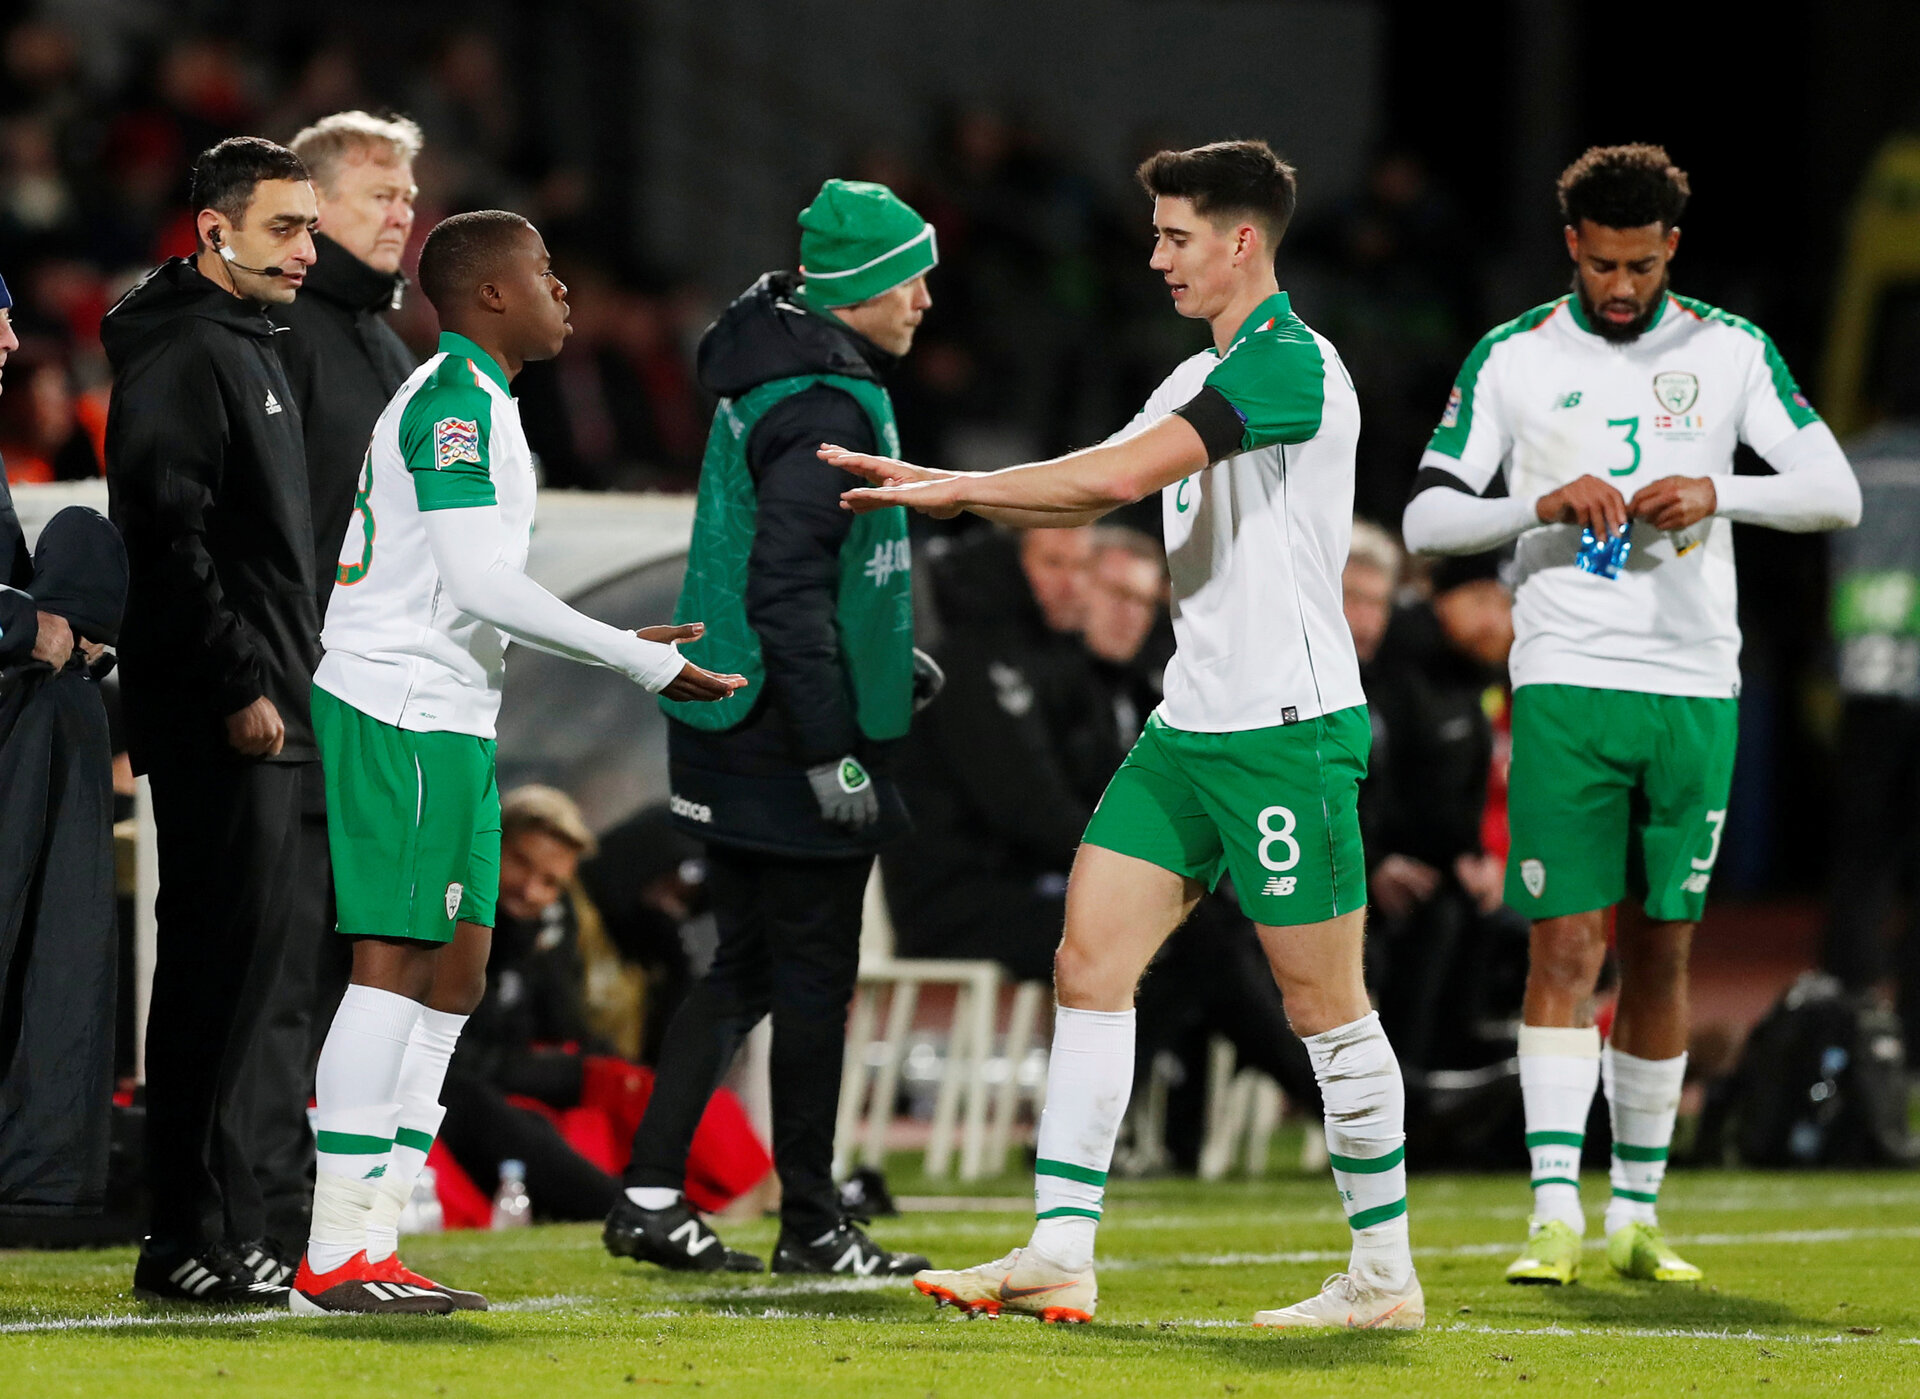 Soccer Football - UEFA Nations League - League B - Group 4 - Denmark v Republic of Ireland - Ceres Park, Aarhus, Denmark - November 19, 2018  Republic of Ireland's Michael Obafemi comes on as a substitute to replace Callum O'Dowda          Action Images via Reuters/Matthew Childs